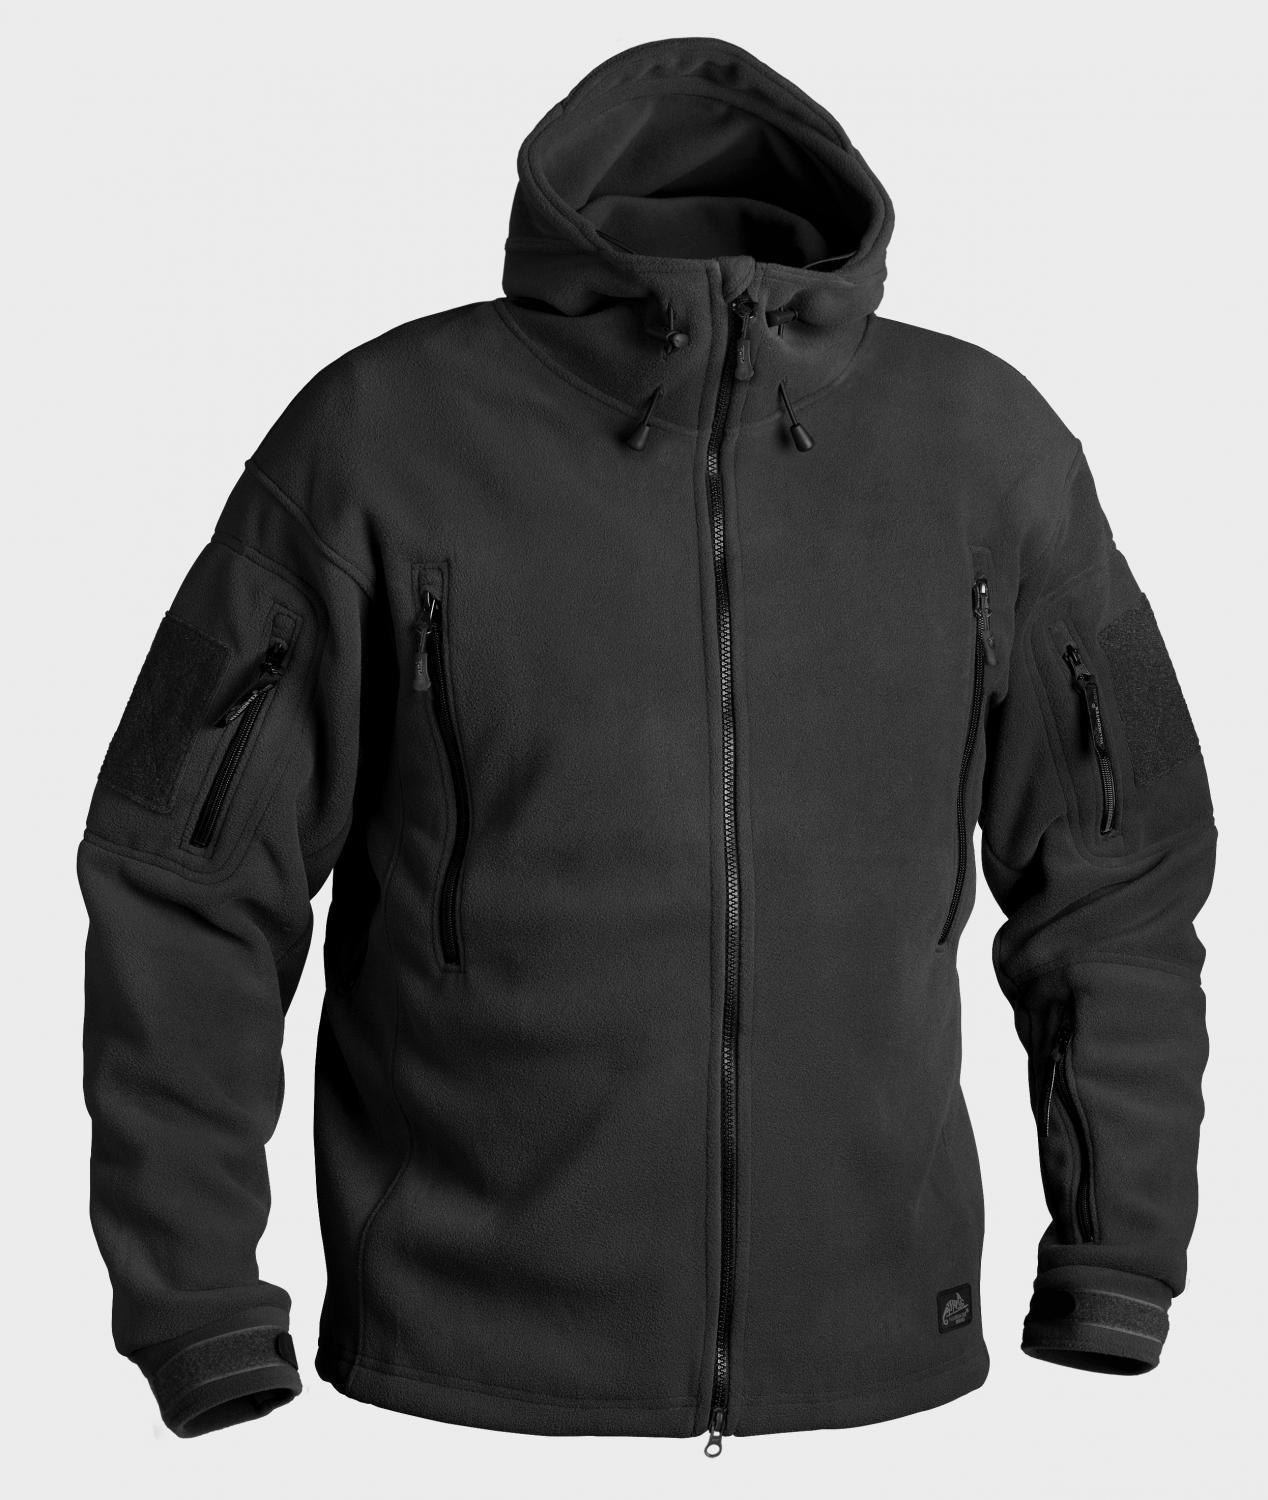 Куртка флис Helikon PATRIOT Jacket - Double Fleece - Black